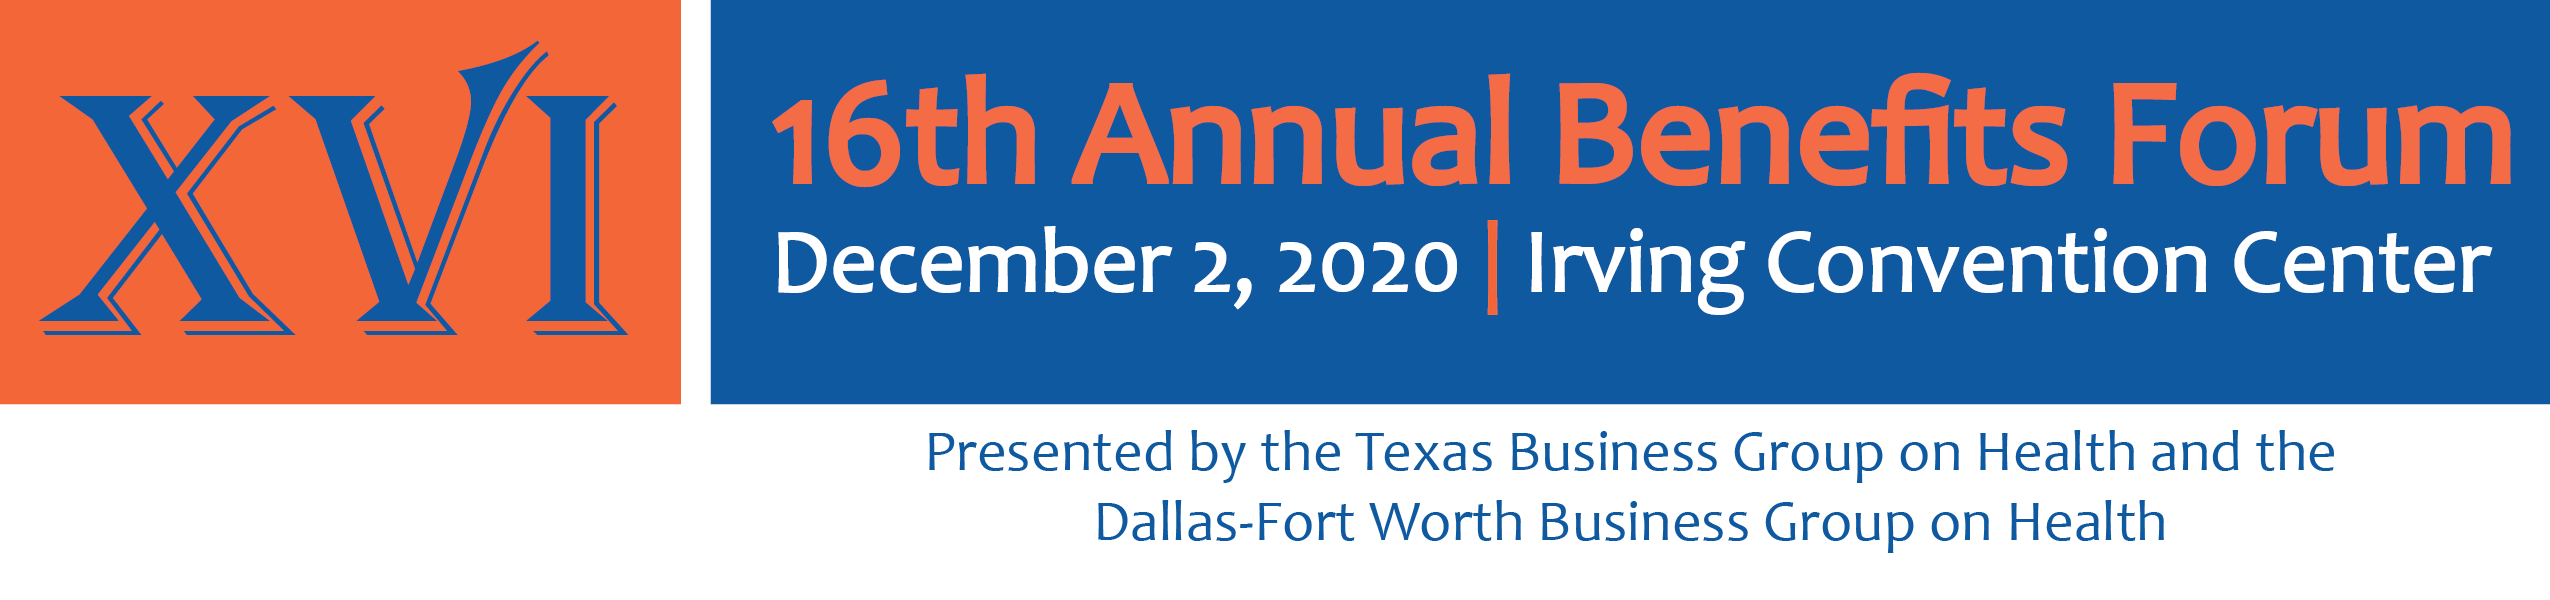 Mark Your Calendar: The 16th Annual Benefits Forum